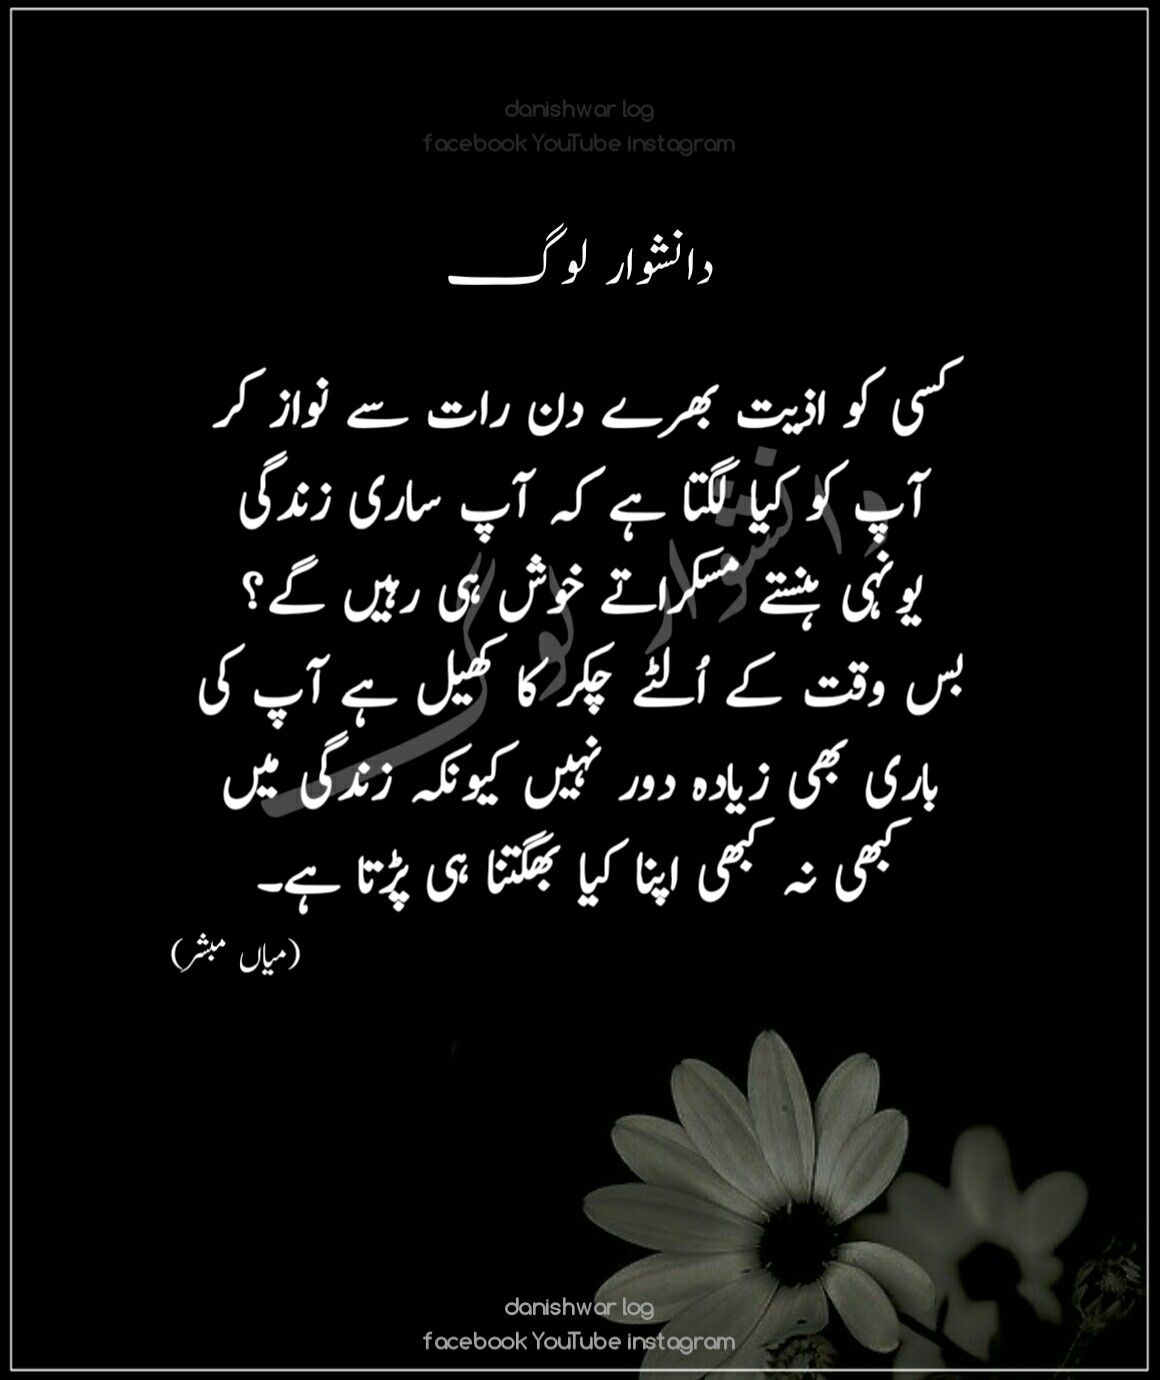 Urdu Poetry Quotes Taunting Quotes Sufi Quotes Touching Words